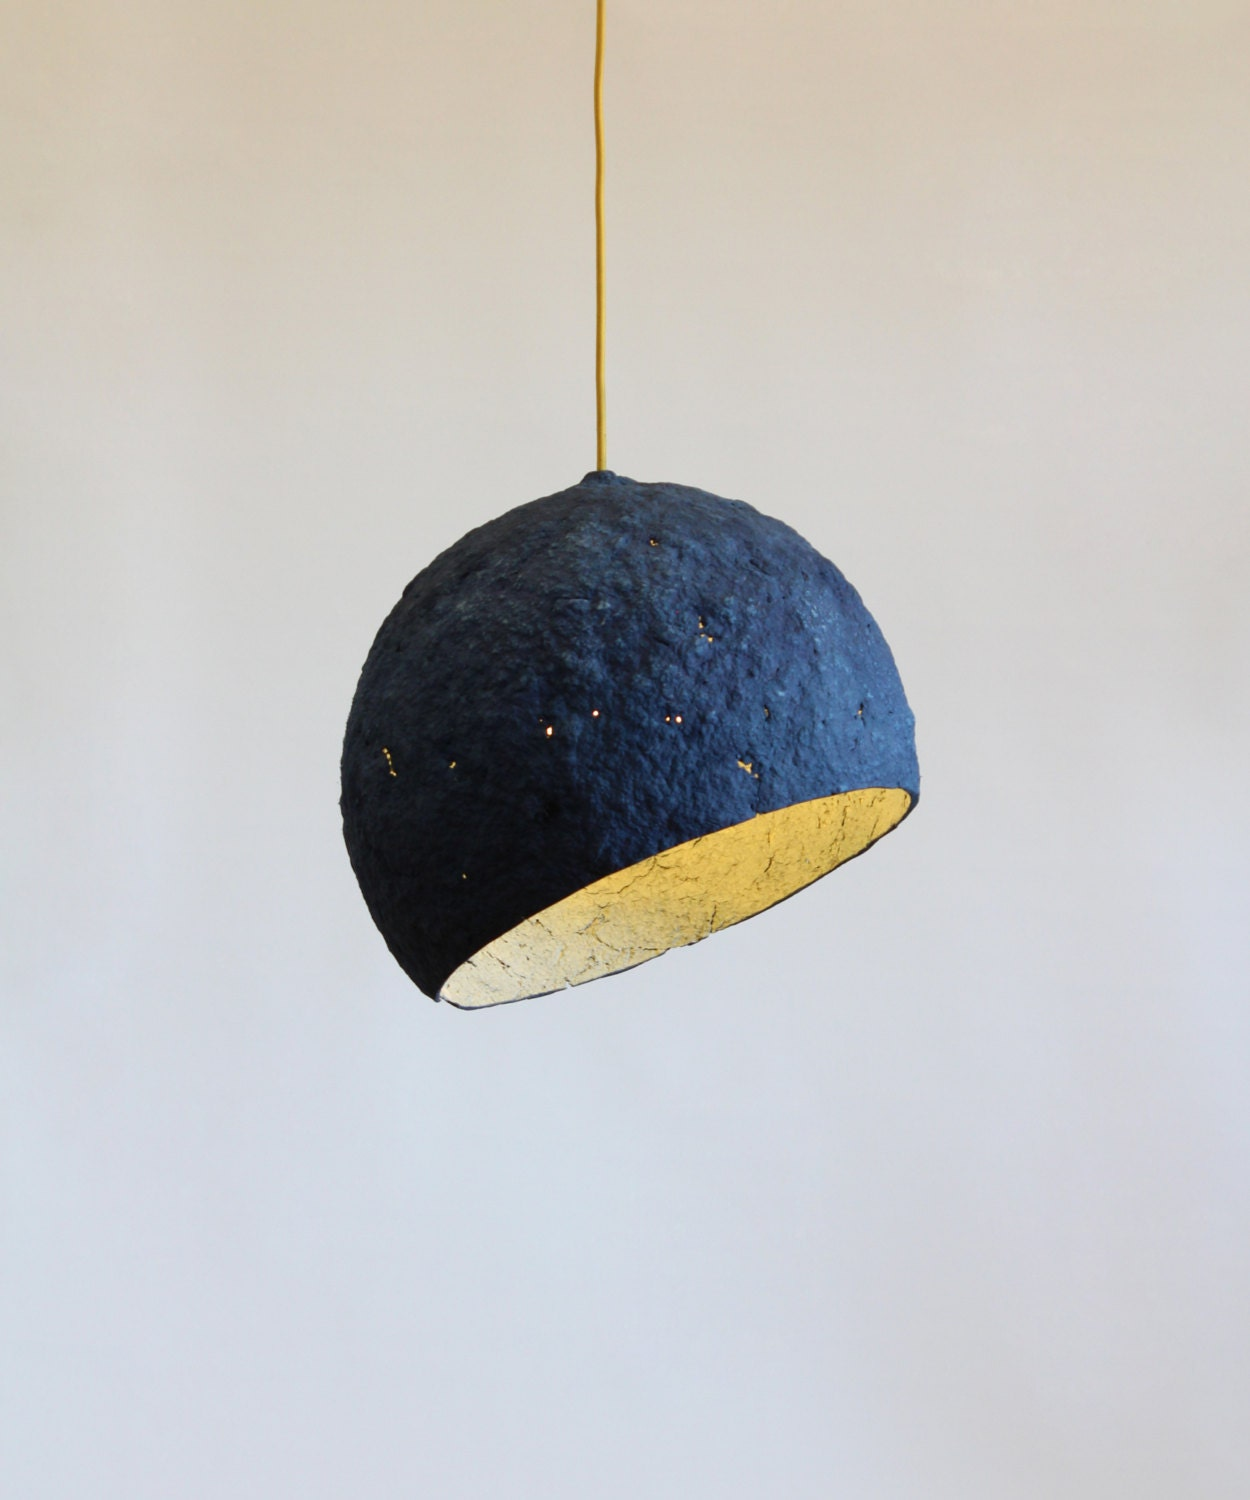 paper mache lamp pluto lamp pendant light hanging lamp